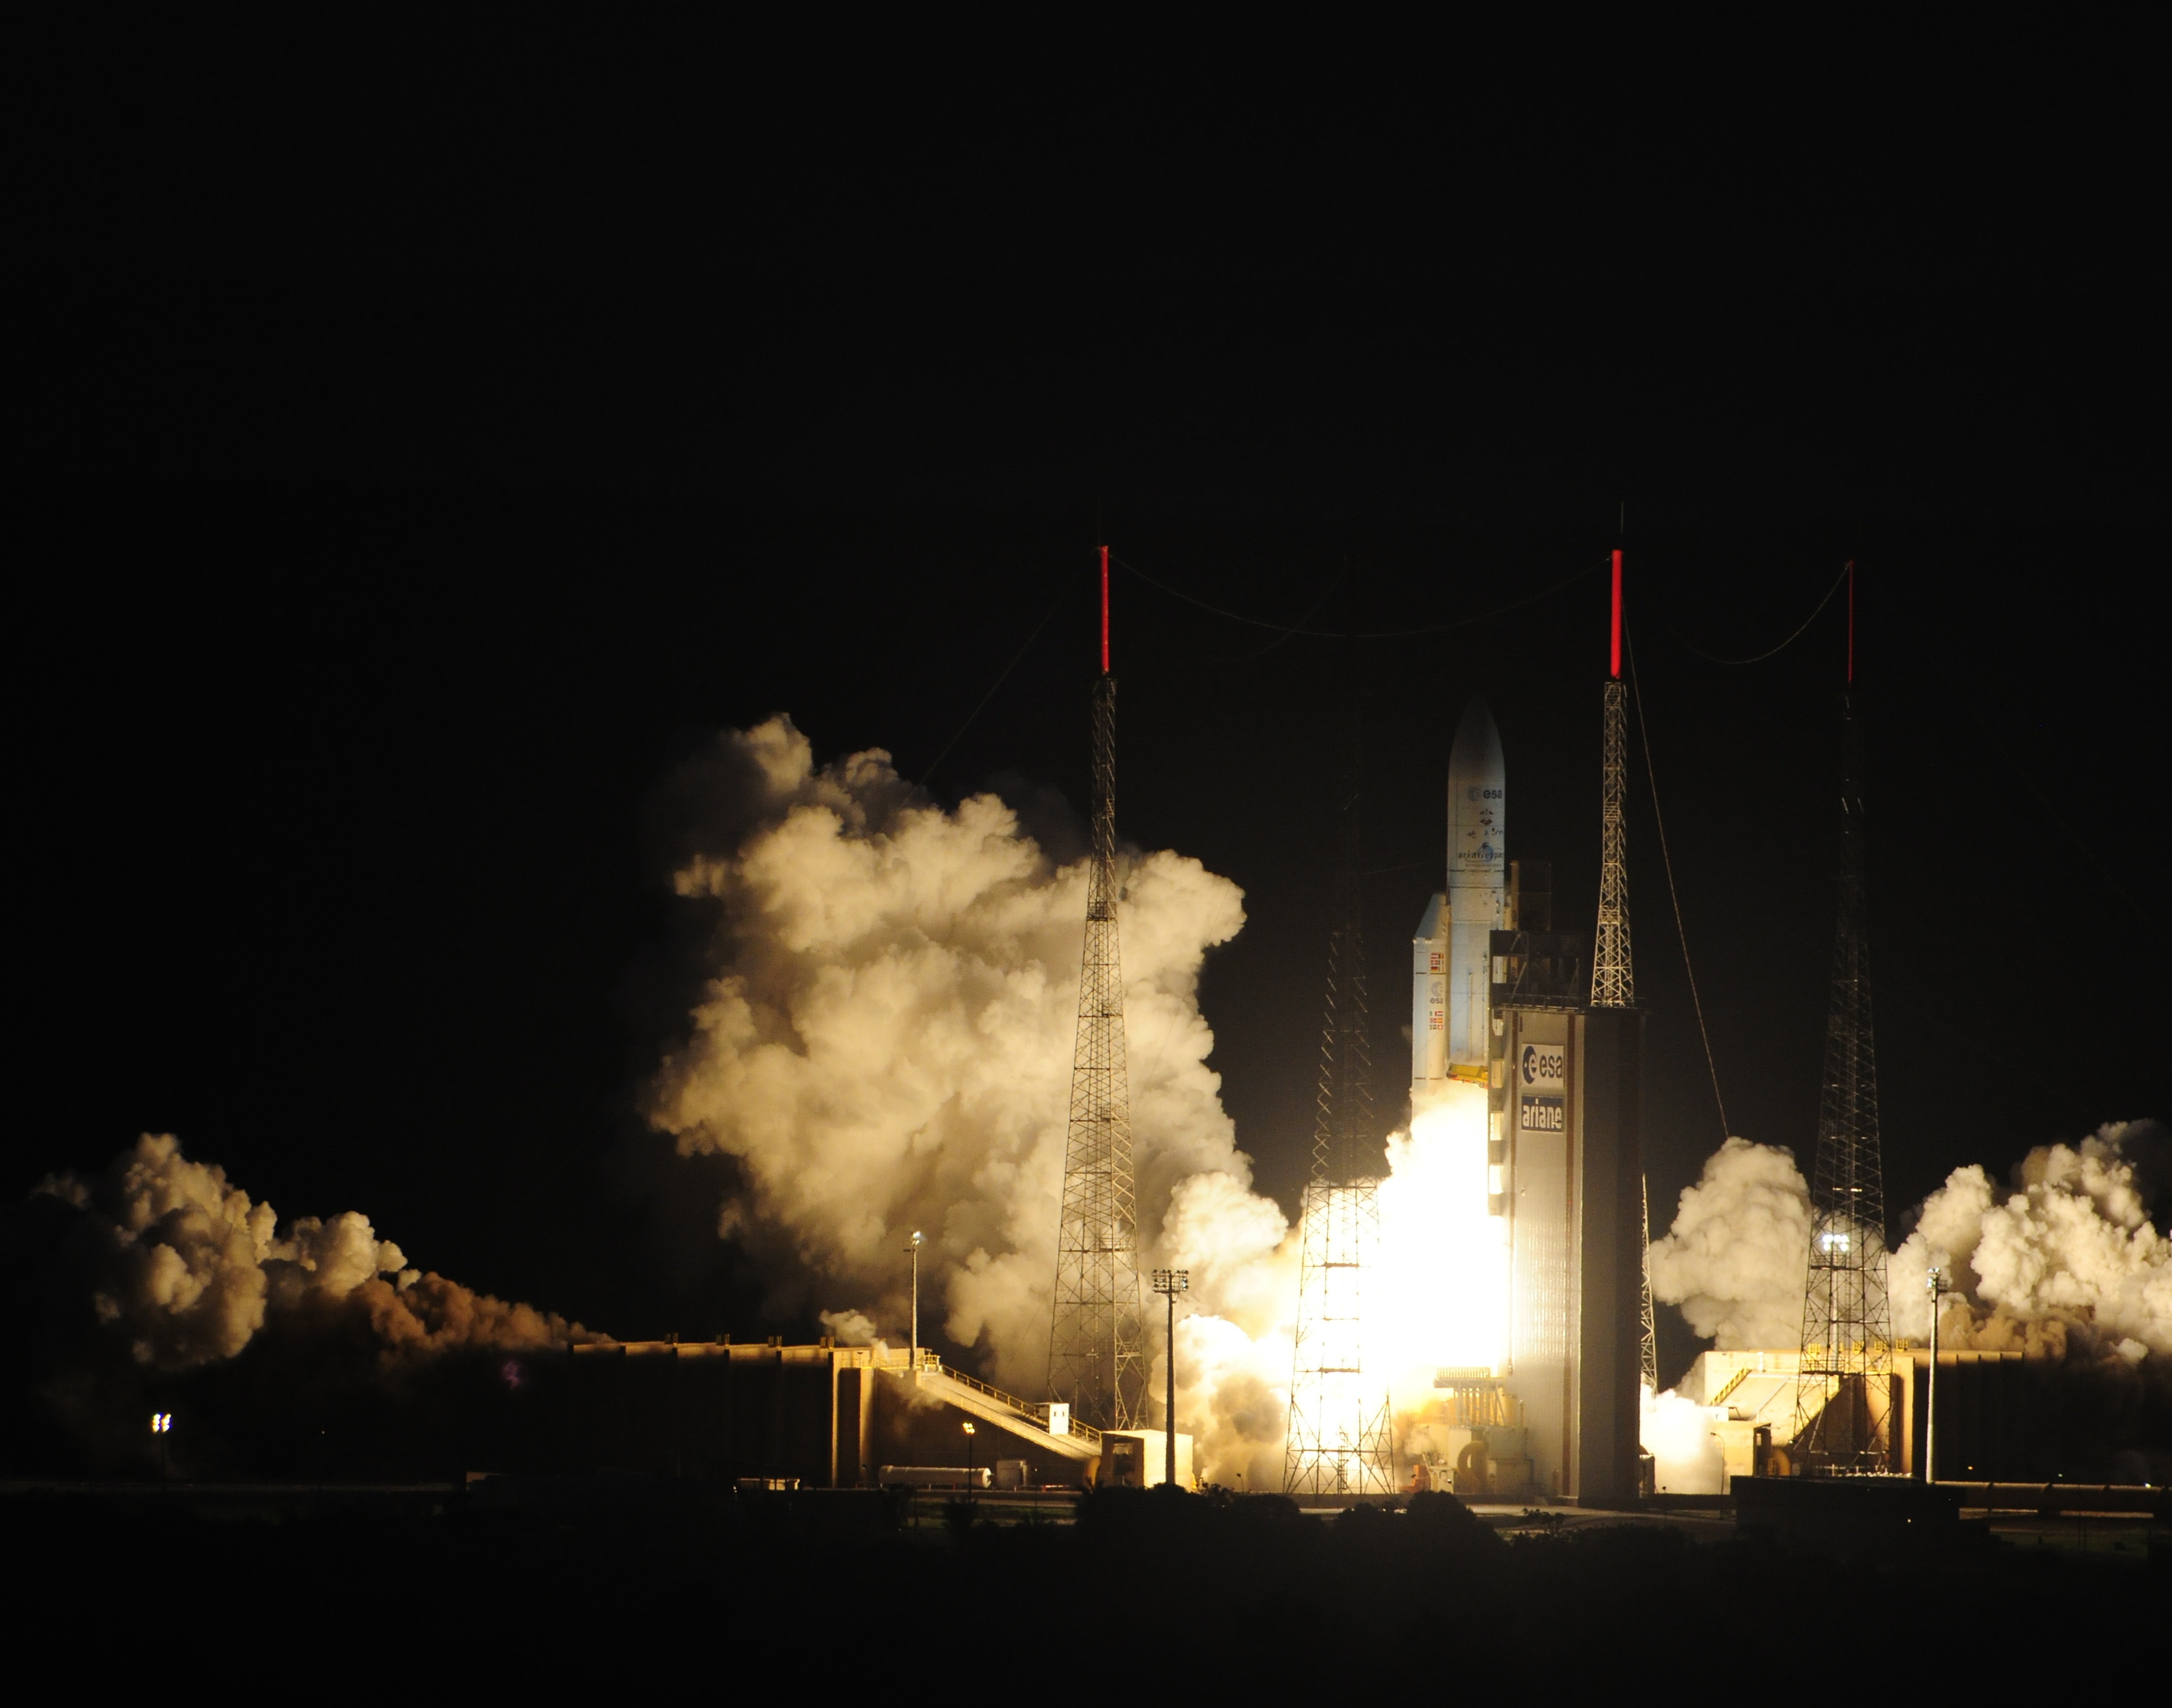 Ariane 5 Begins Launch with ATV-4